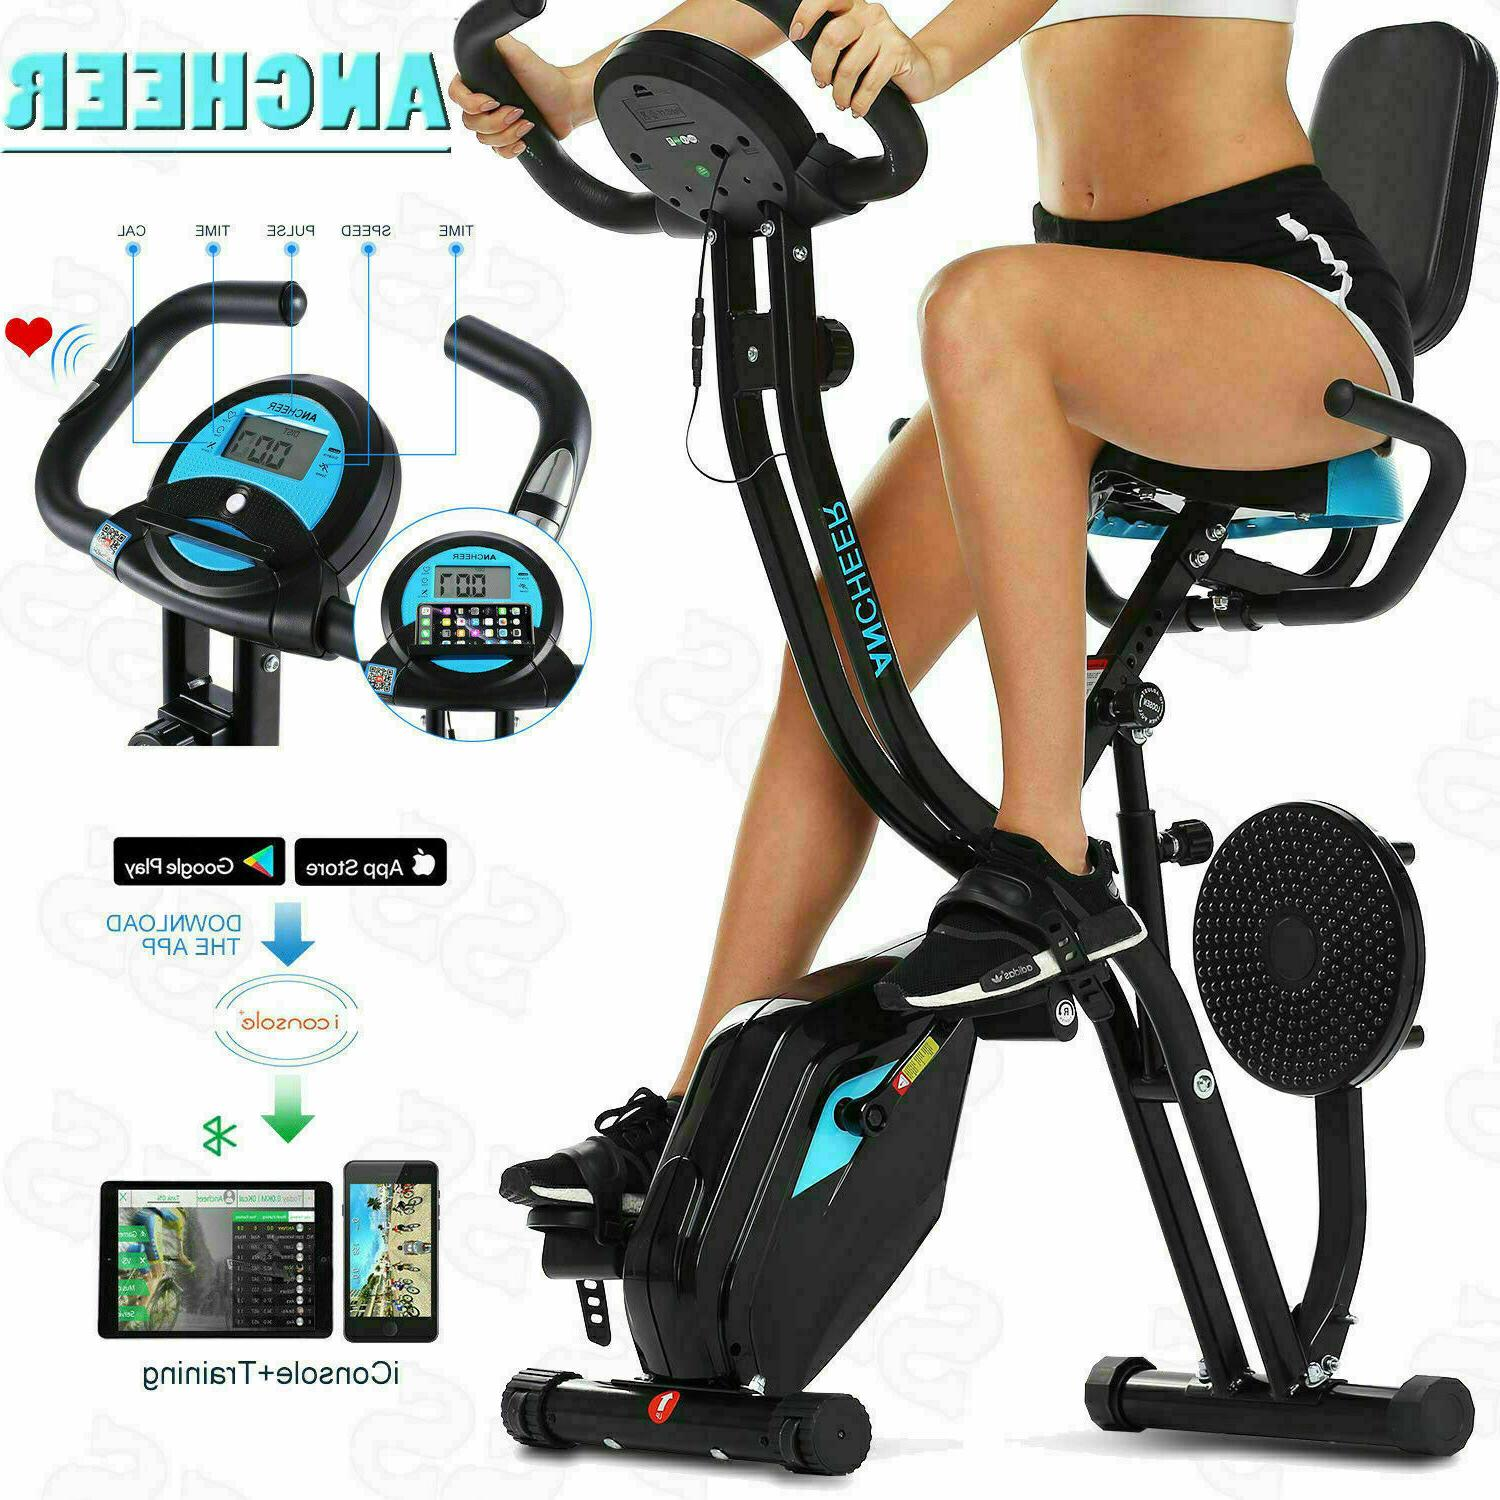 Indoor Exercise Slim Folding Bike 3 in1 Stationary Cycle Rec